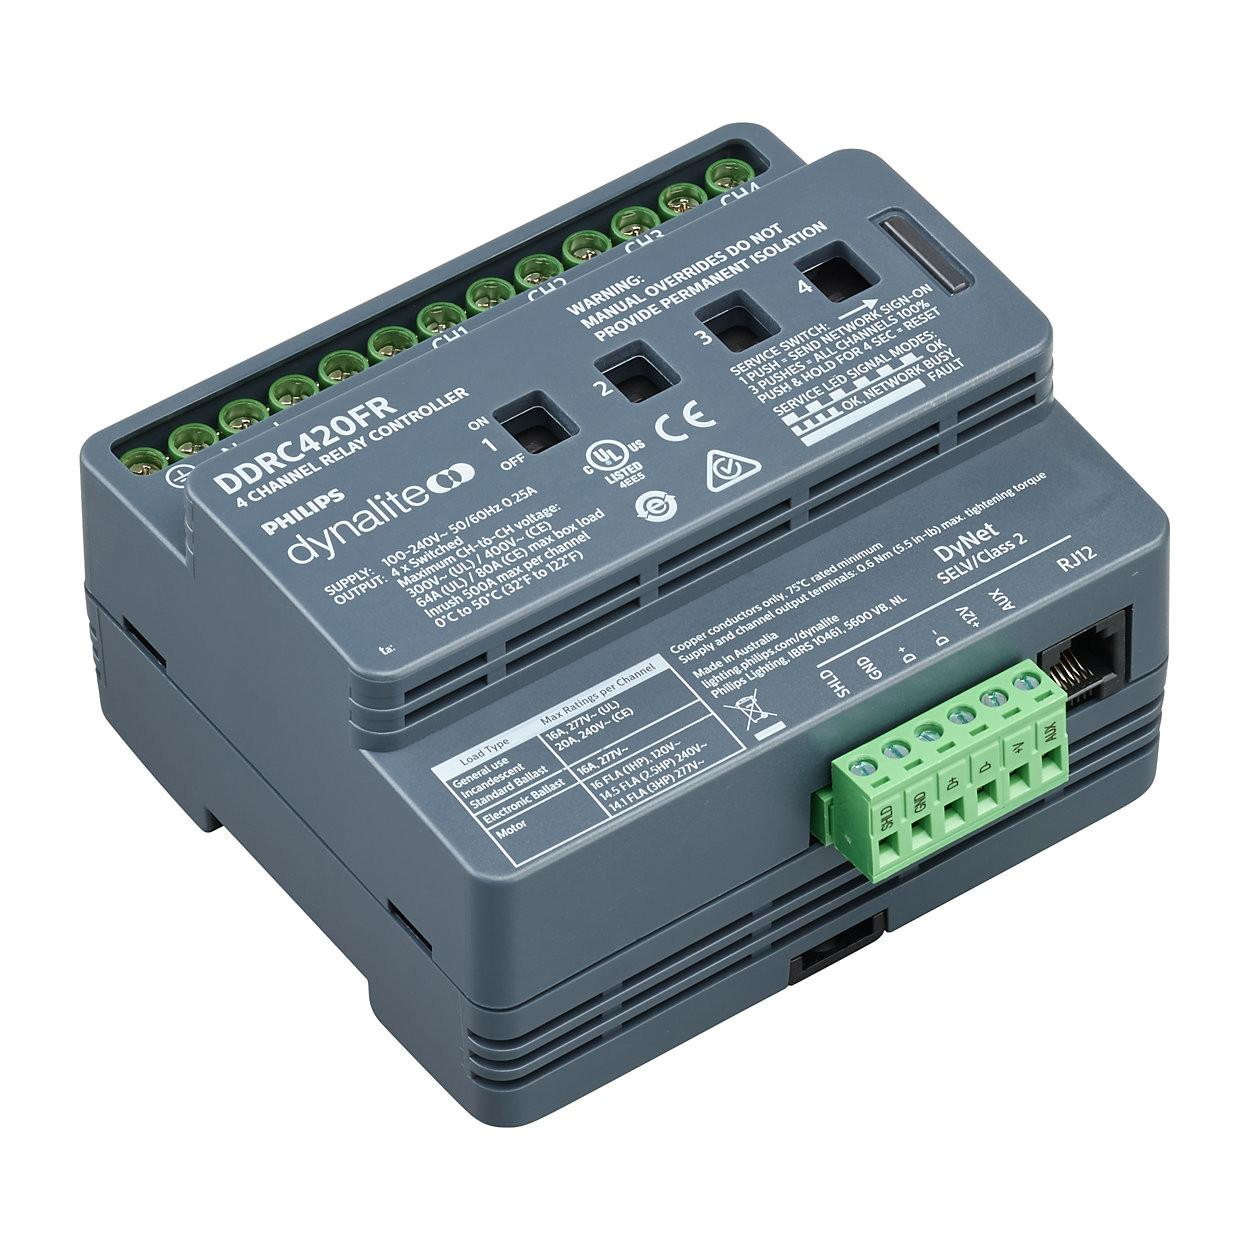 Ddrc420fr Dynalite Relay Controllers Philips Lighting